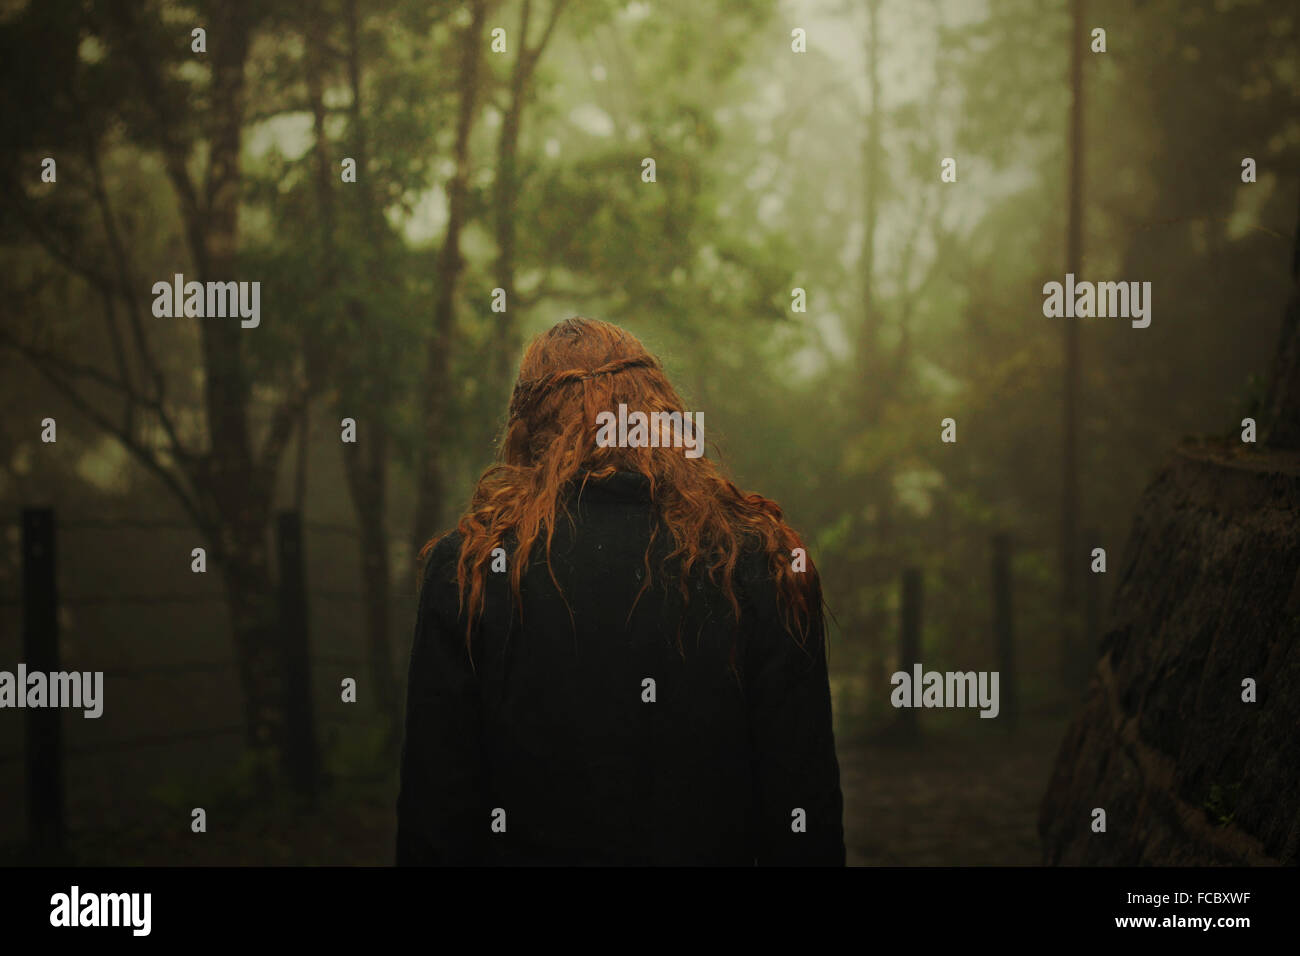 Rear View Of A Redhead Woman In The Forest - Stock Image